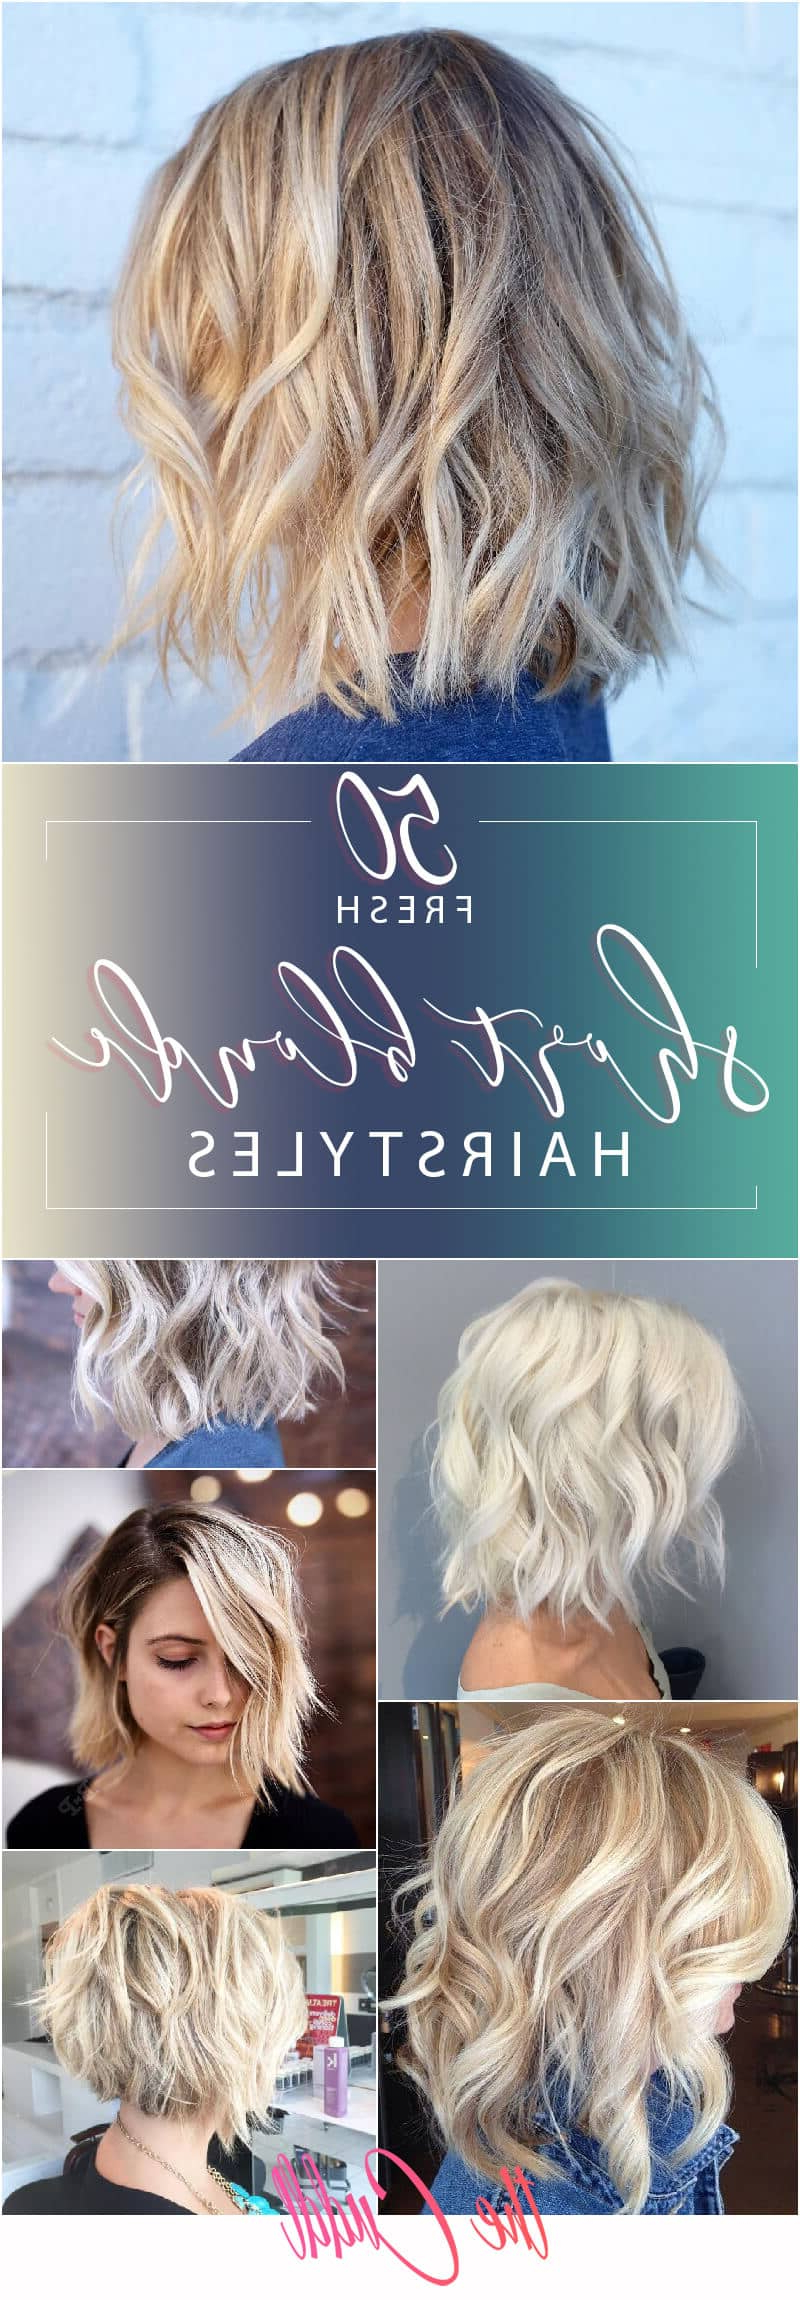 Favorite Ash Blonde Bob Hairstyles With Light Long Layers Intended For 50 Fresh Short Blonde Hair Ideas To Update Your Style In (View 5 of 20)